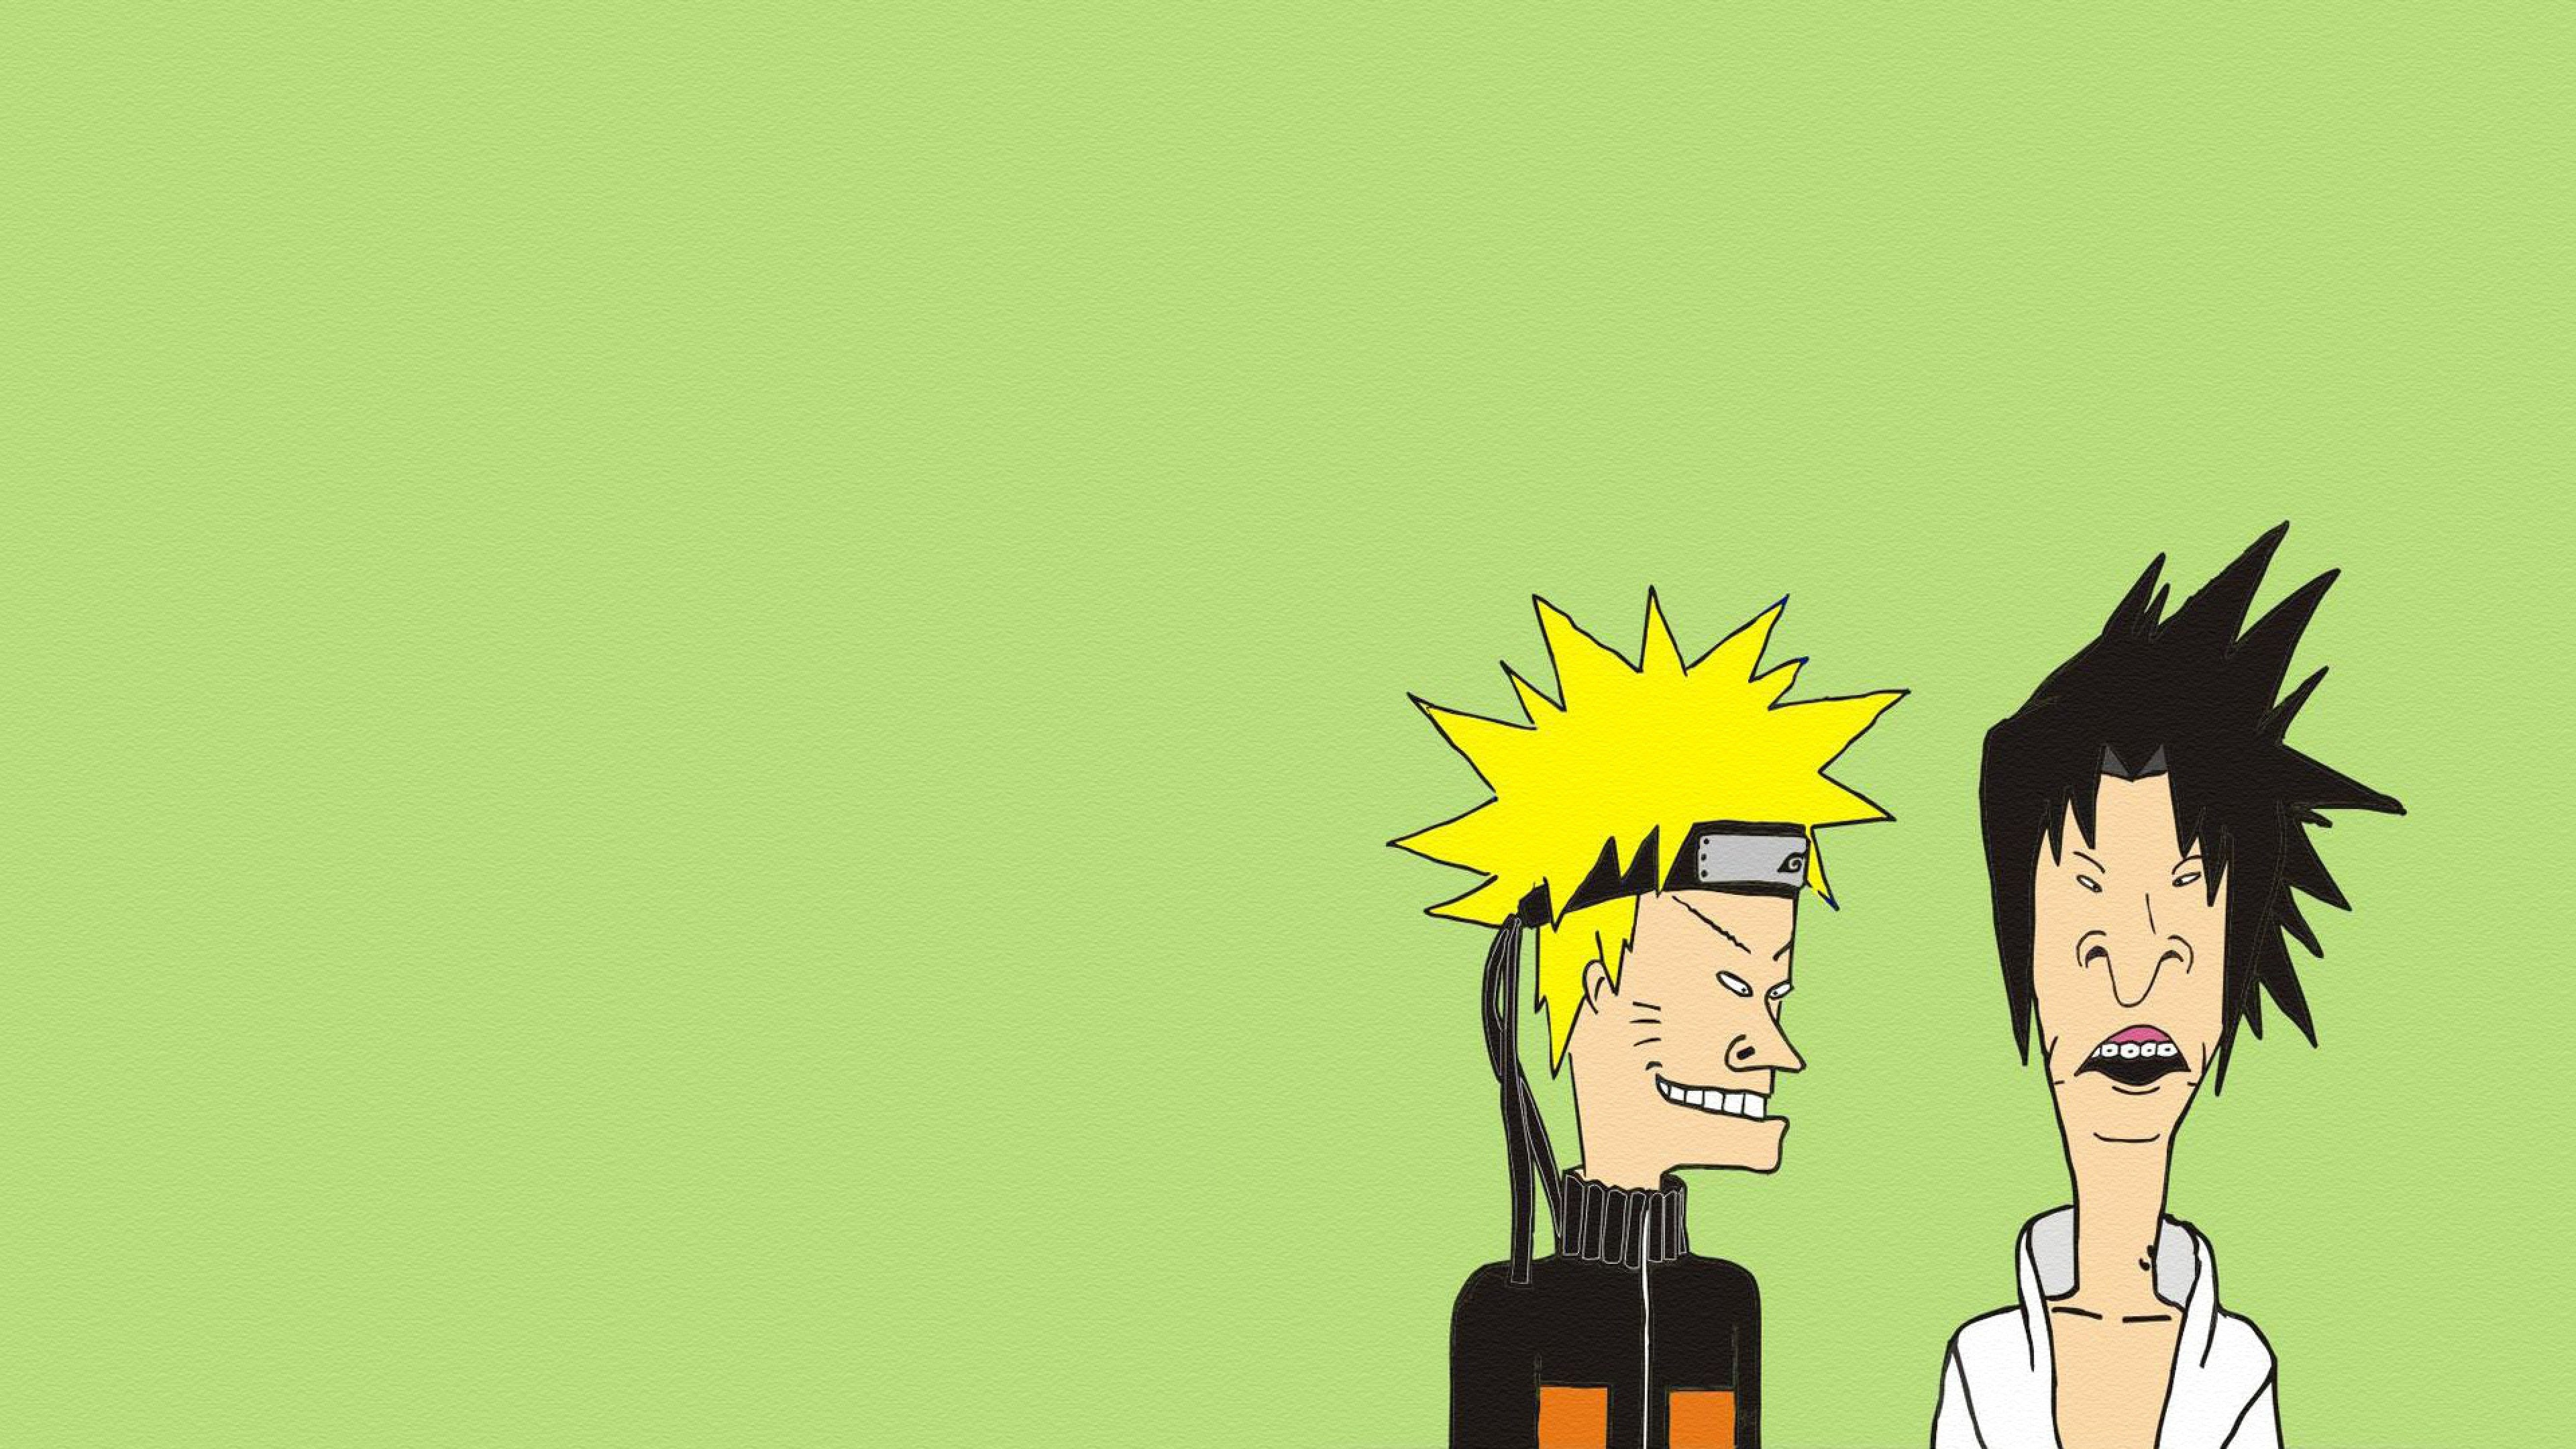 Naruto Beavis and butt head Minimalism Wallpaper Background 4K 3840x2160